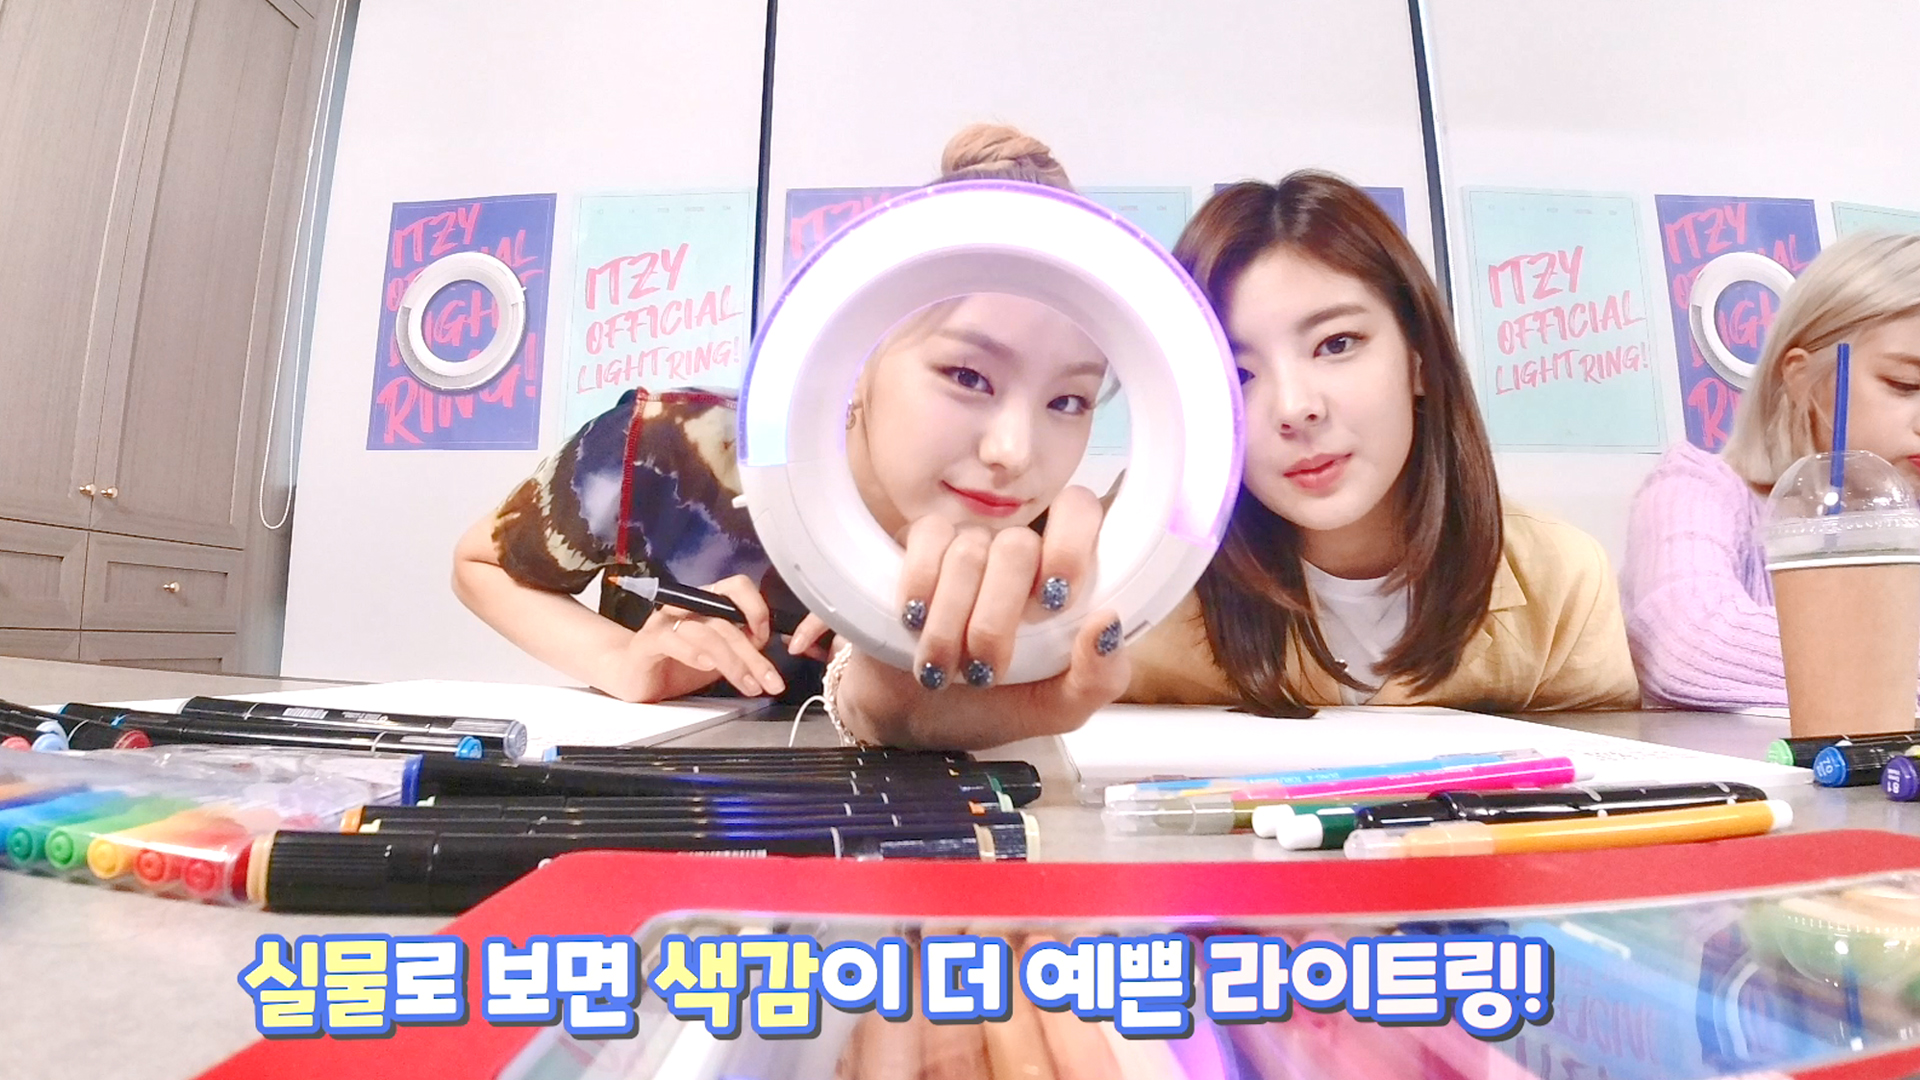 ITZY(있지) OFFICIAL LIGHT RING POP-UP STORE EP.01